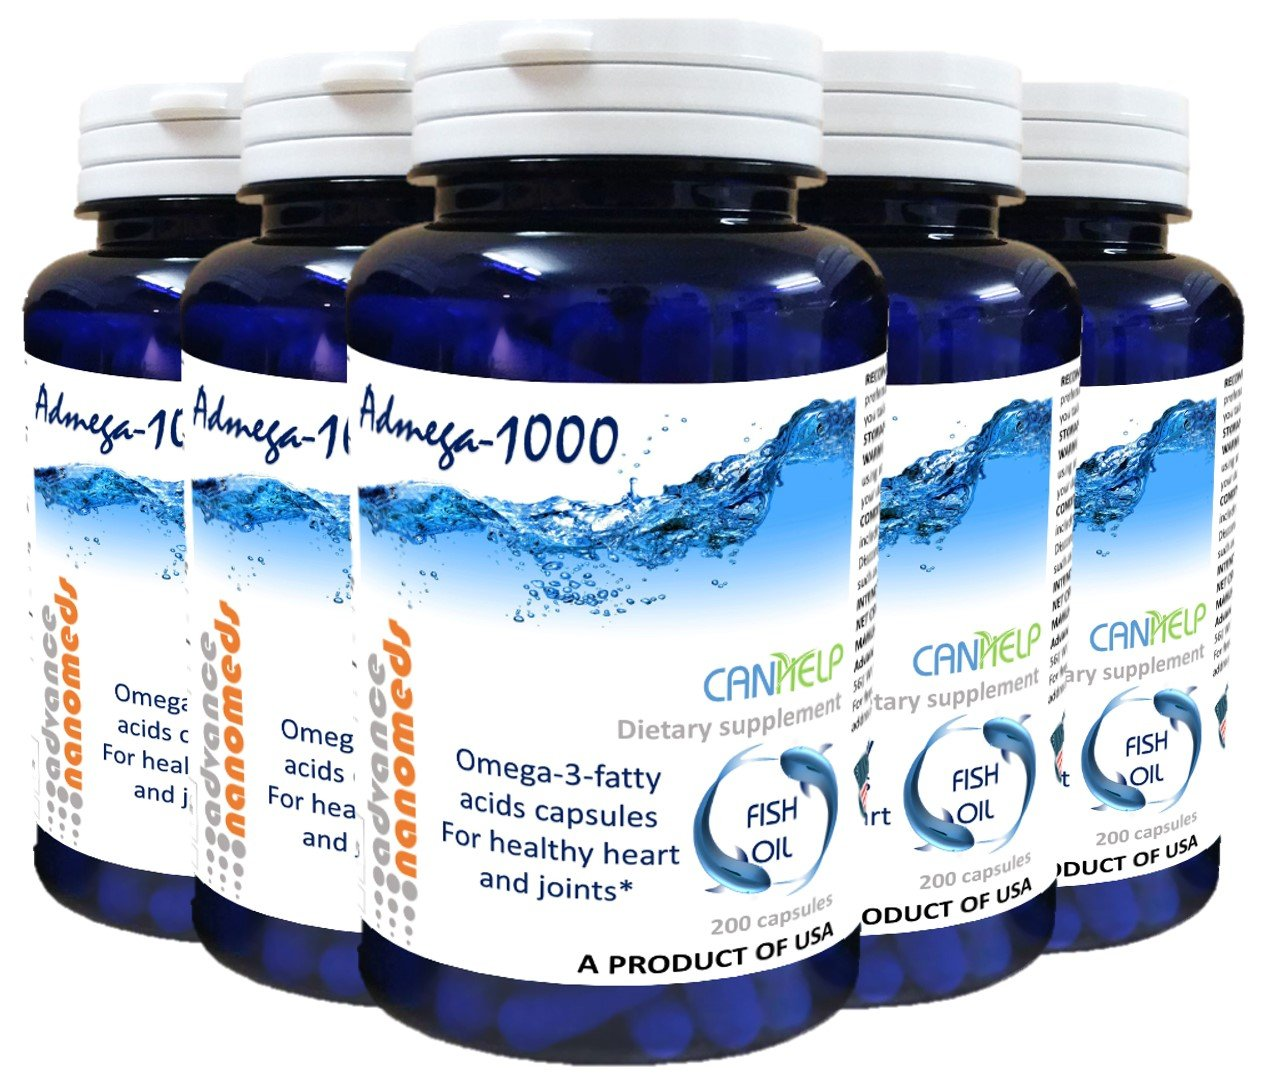 Omega 3 Fish Oil Capsules (35 Packs of 200 capsules) With 50% EPA DHA 1000mg (35)